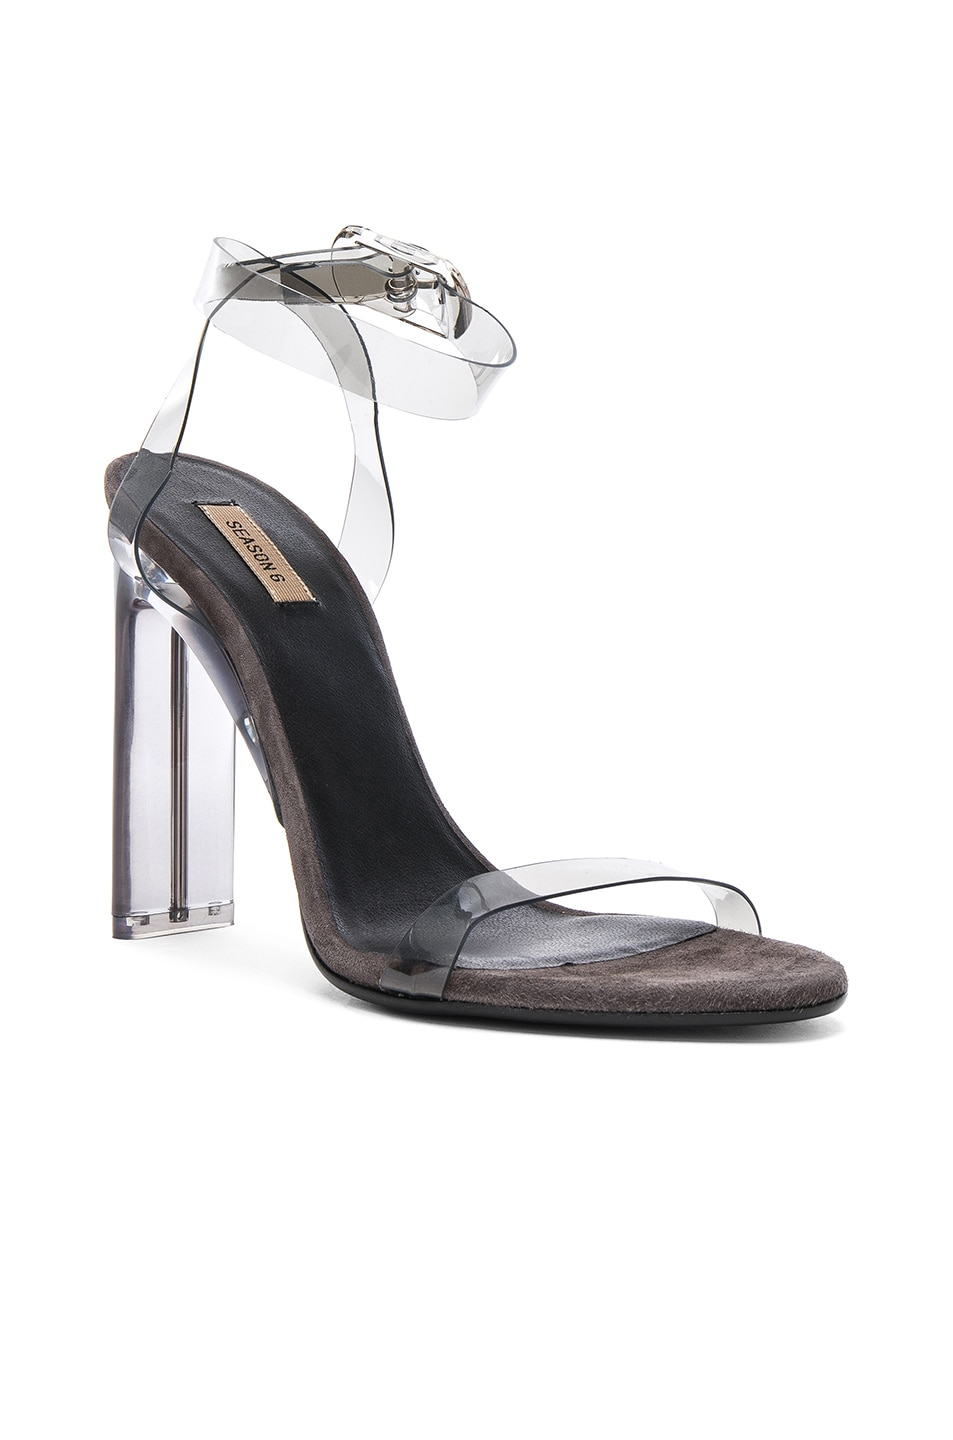 Image 2 of YEEZY Season 6 PVC Sandals with Ankle Strap in Smoke